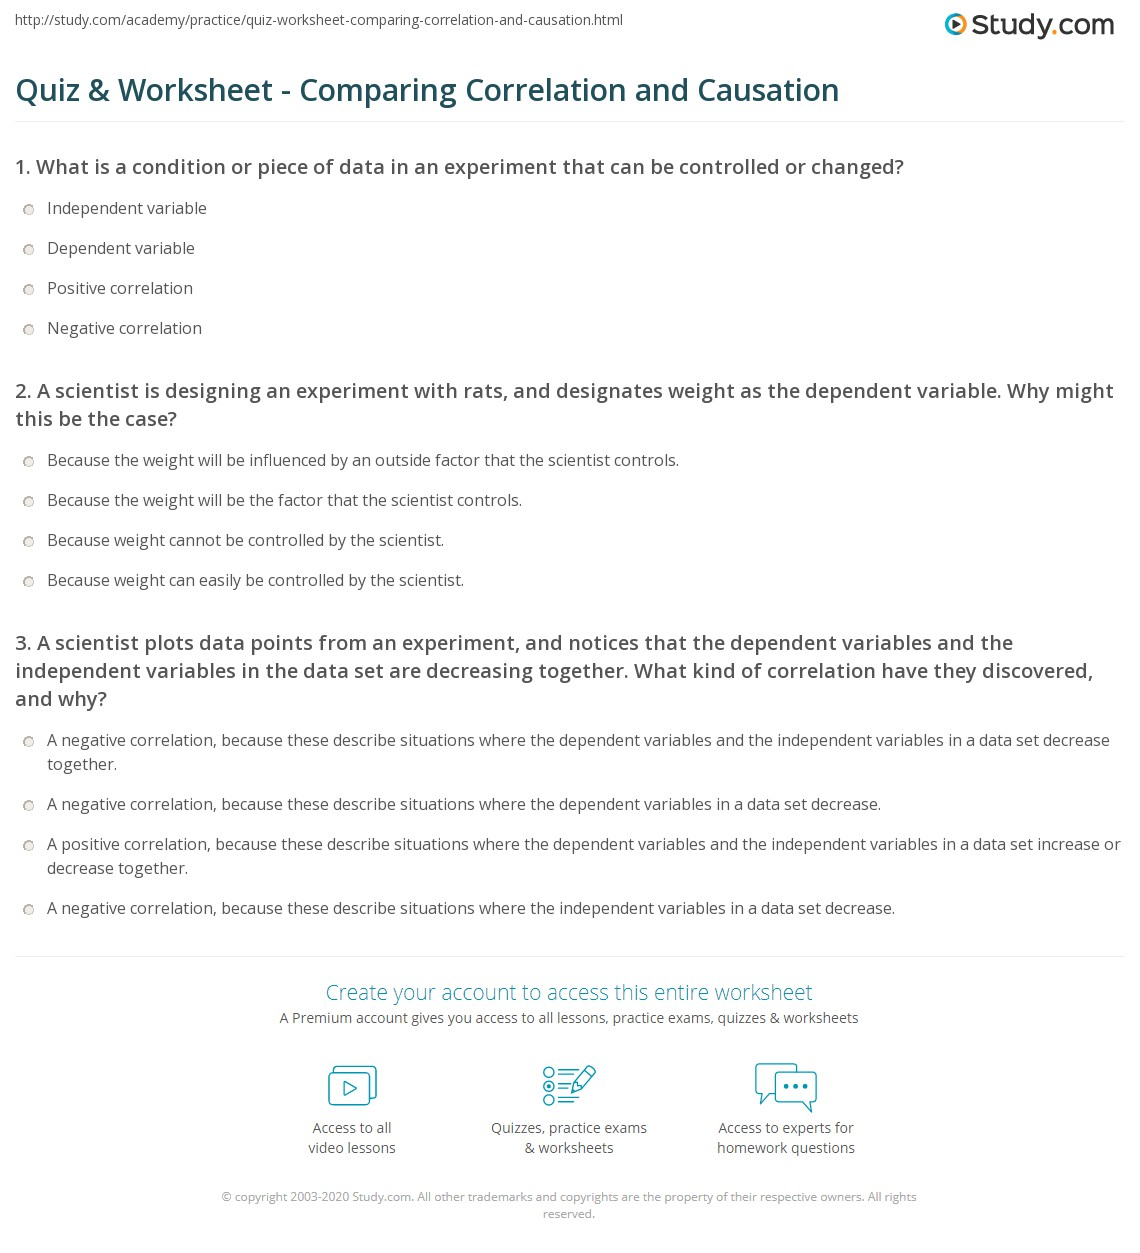 Aldiablosus  Pretty Quiz Amp Worksheet  Comparing Correlation And Causation  Studycom With Exciting Print Correlation Vs Causation Differences Amp Definition Worksheet With Appealing Math Array Worksheets Also Overview Chemical Reactions Worksheet In Addition Pictograph Worksheets Rd Grade And Worksheets Printable As Well As Math Problems For Th Graders Worksheets Additionally Free Short Vowel Worksheets From Studycom With Aldiablosus  Exciting Quiz Amp Worksheet  Comparing Correlation And Causation  Studycom With Appealing Print Correlation Vs Causation Differences Amp Definition Worksheet And Pretty Math Array Worksheets Also Overview Chemical Reactions Worksheet In Addition Pictograph Worksheets Rd Grade From Studycom